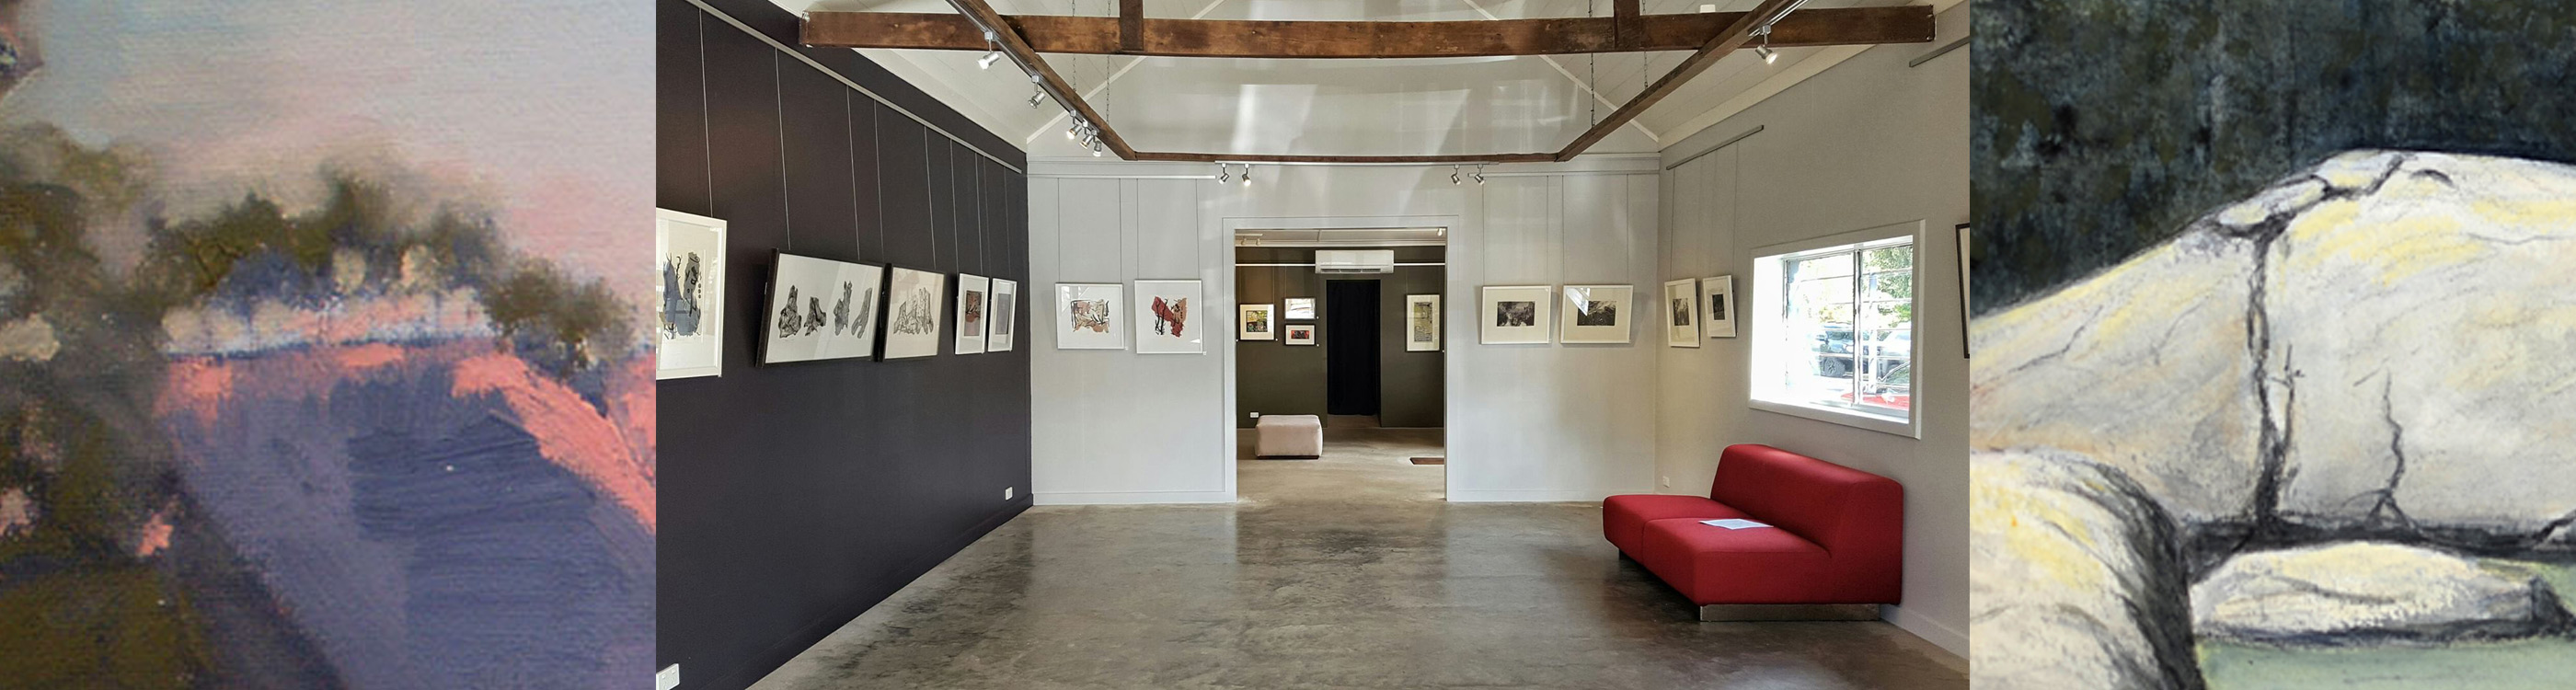 Briagalong Art Gallery in Gippsland